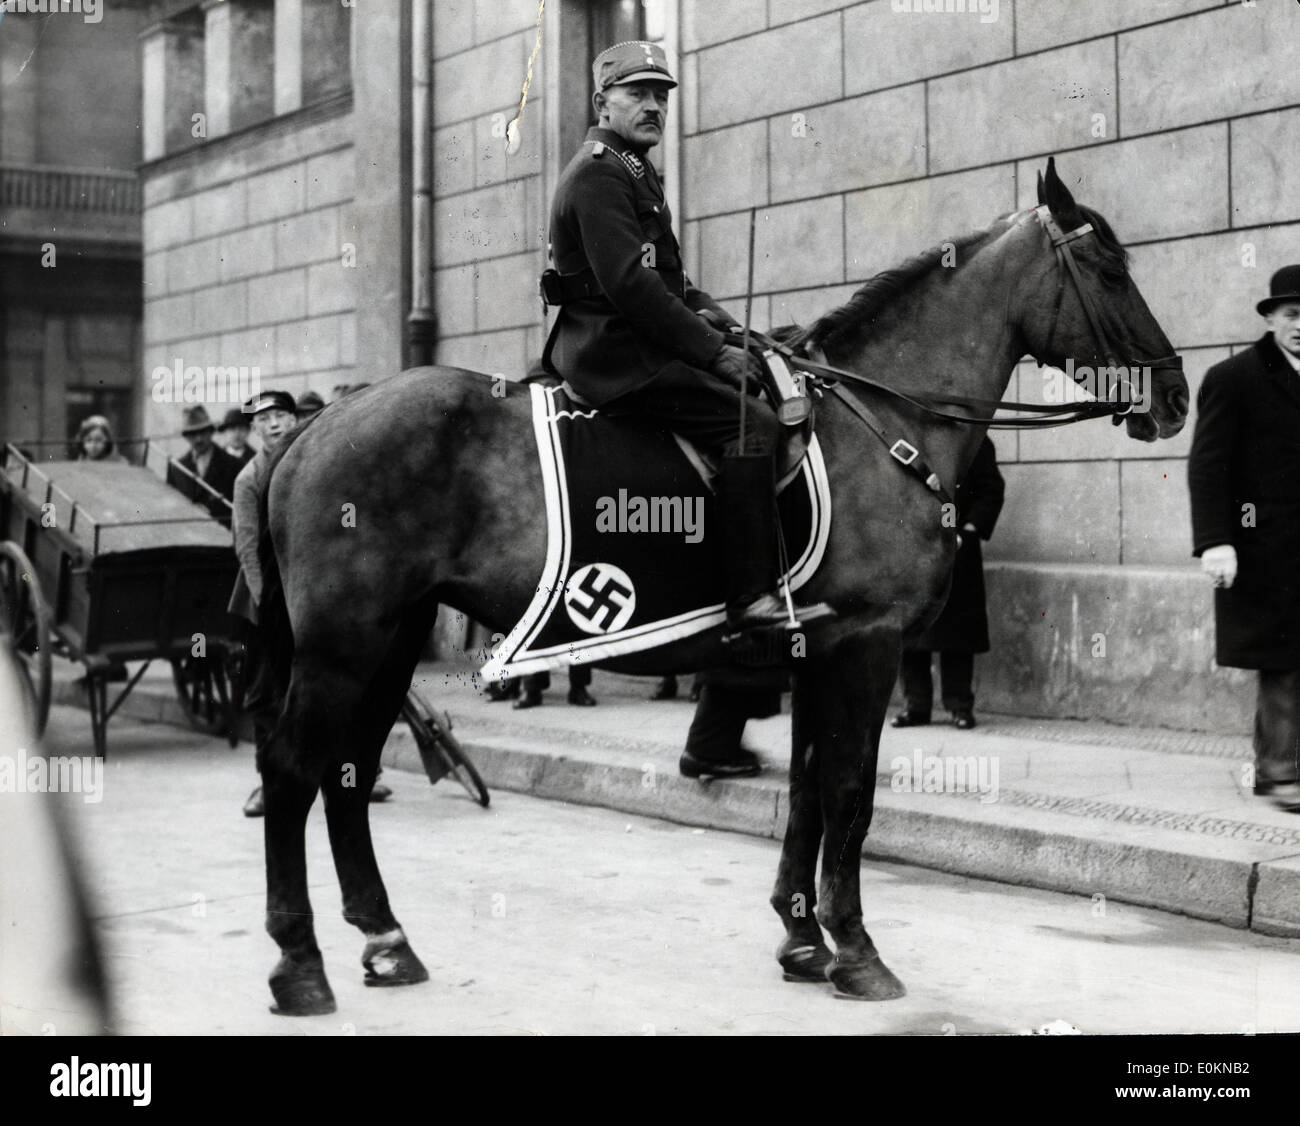 Nazi man on horseback in front of the Reichstag - Stock Image